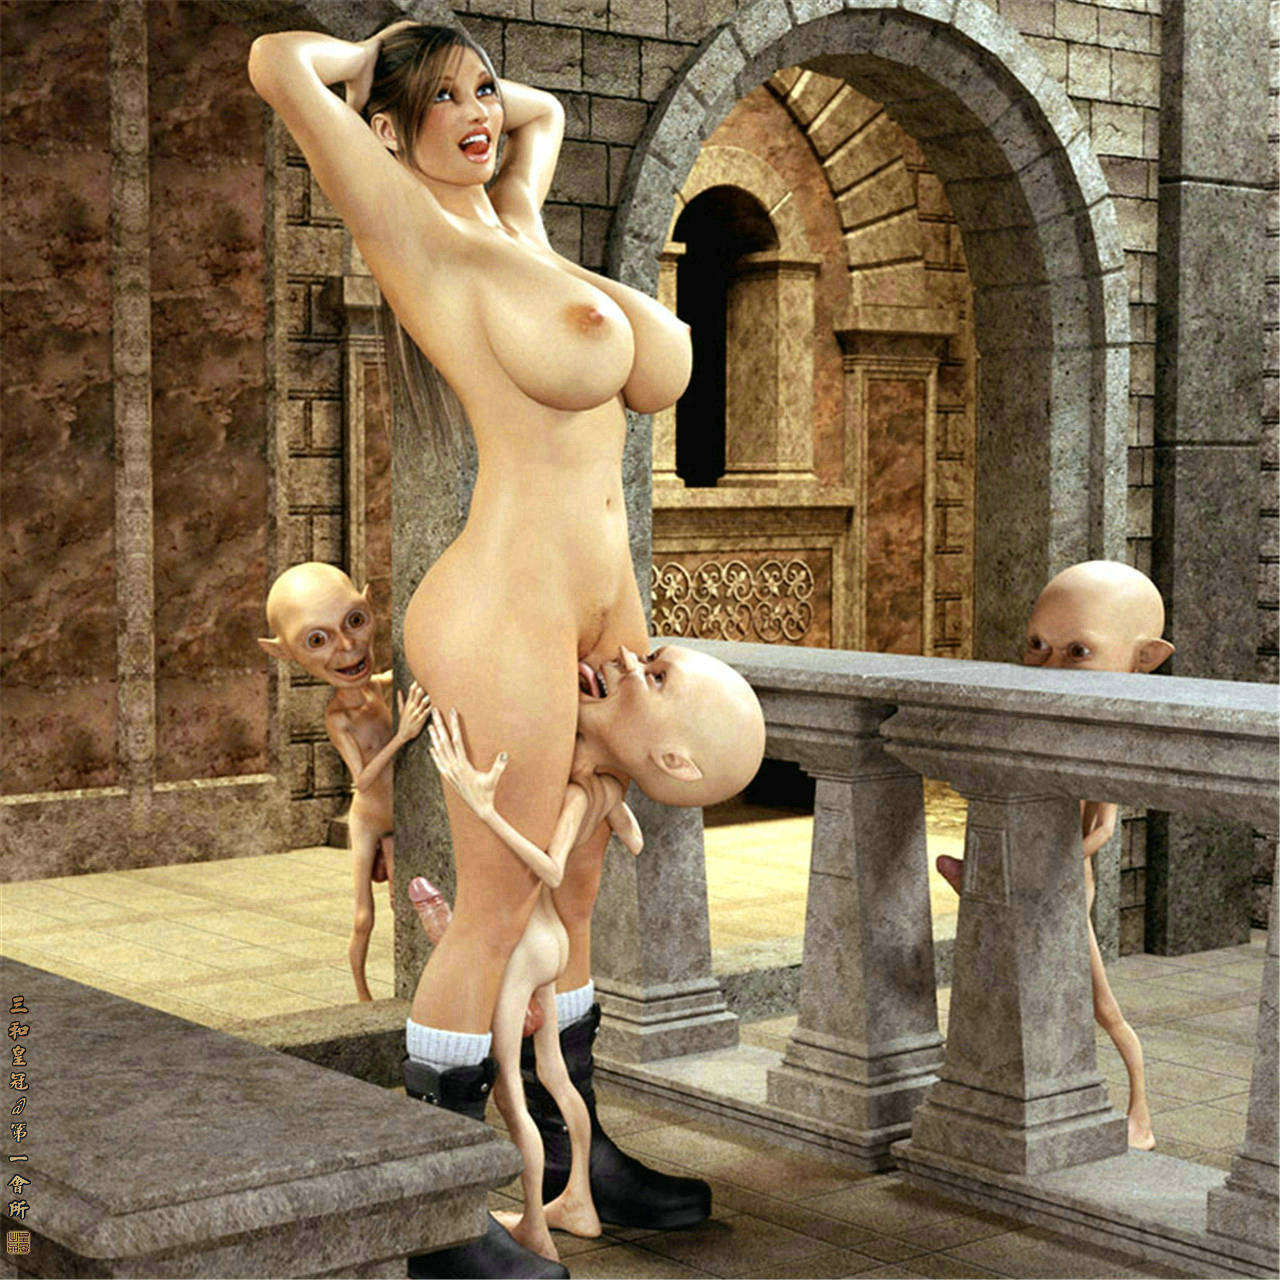 Erotic 3d art lara videos sexual movies